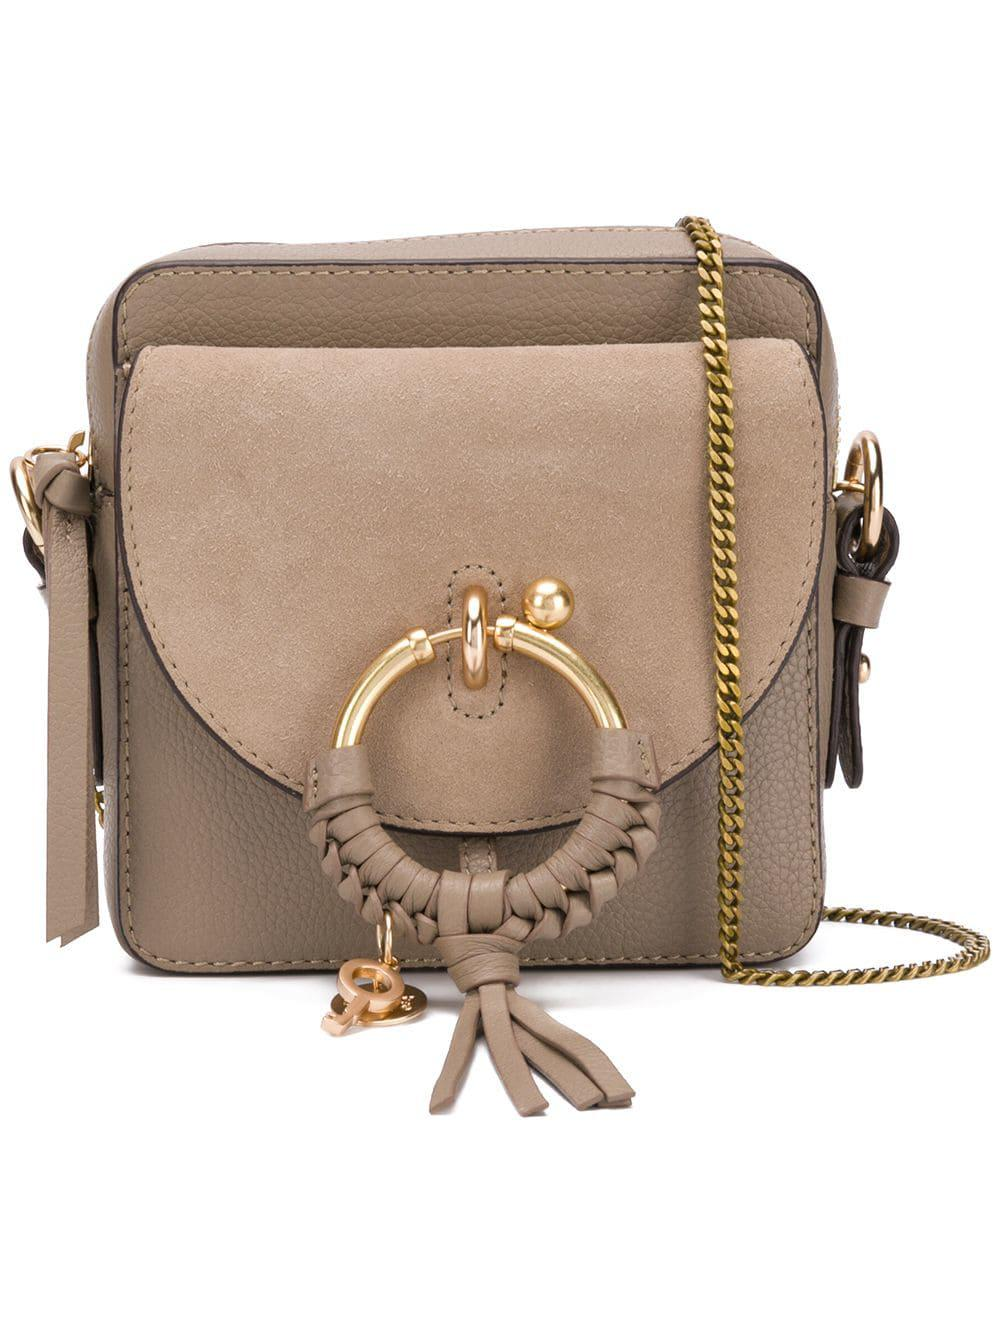 47ed2cdec877 See By Chloé - Gray Leather Shoulder Bag - Lyst. View fullscreen